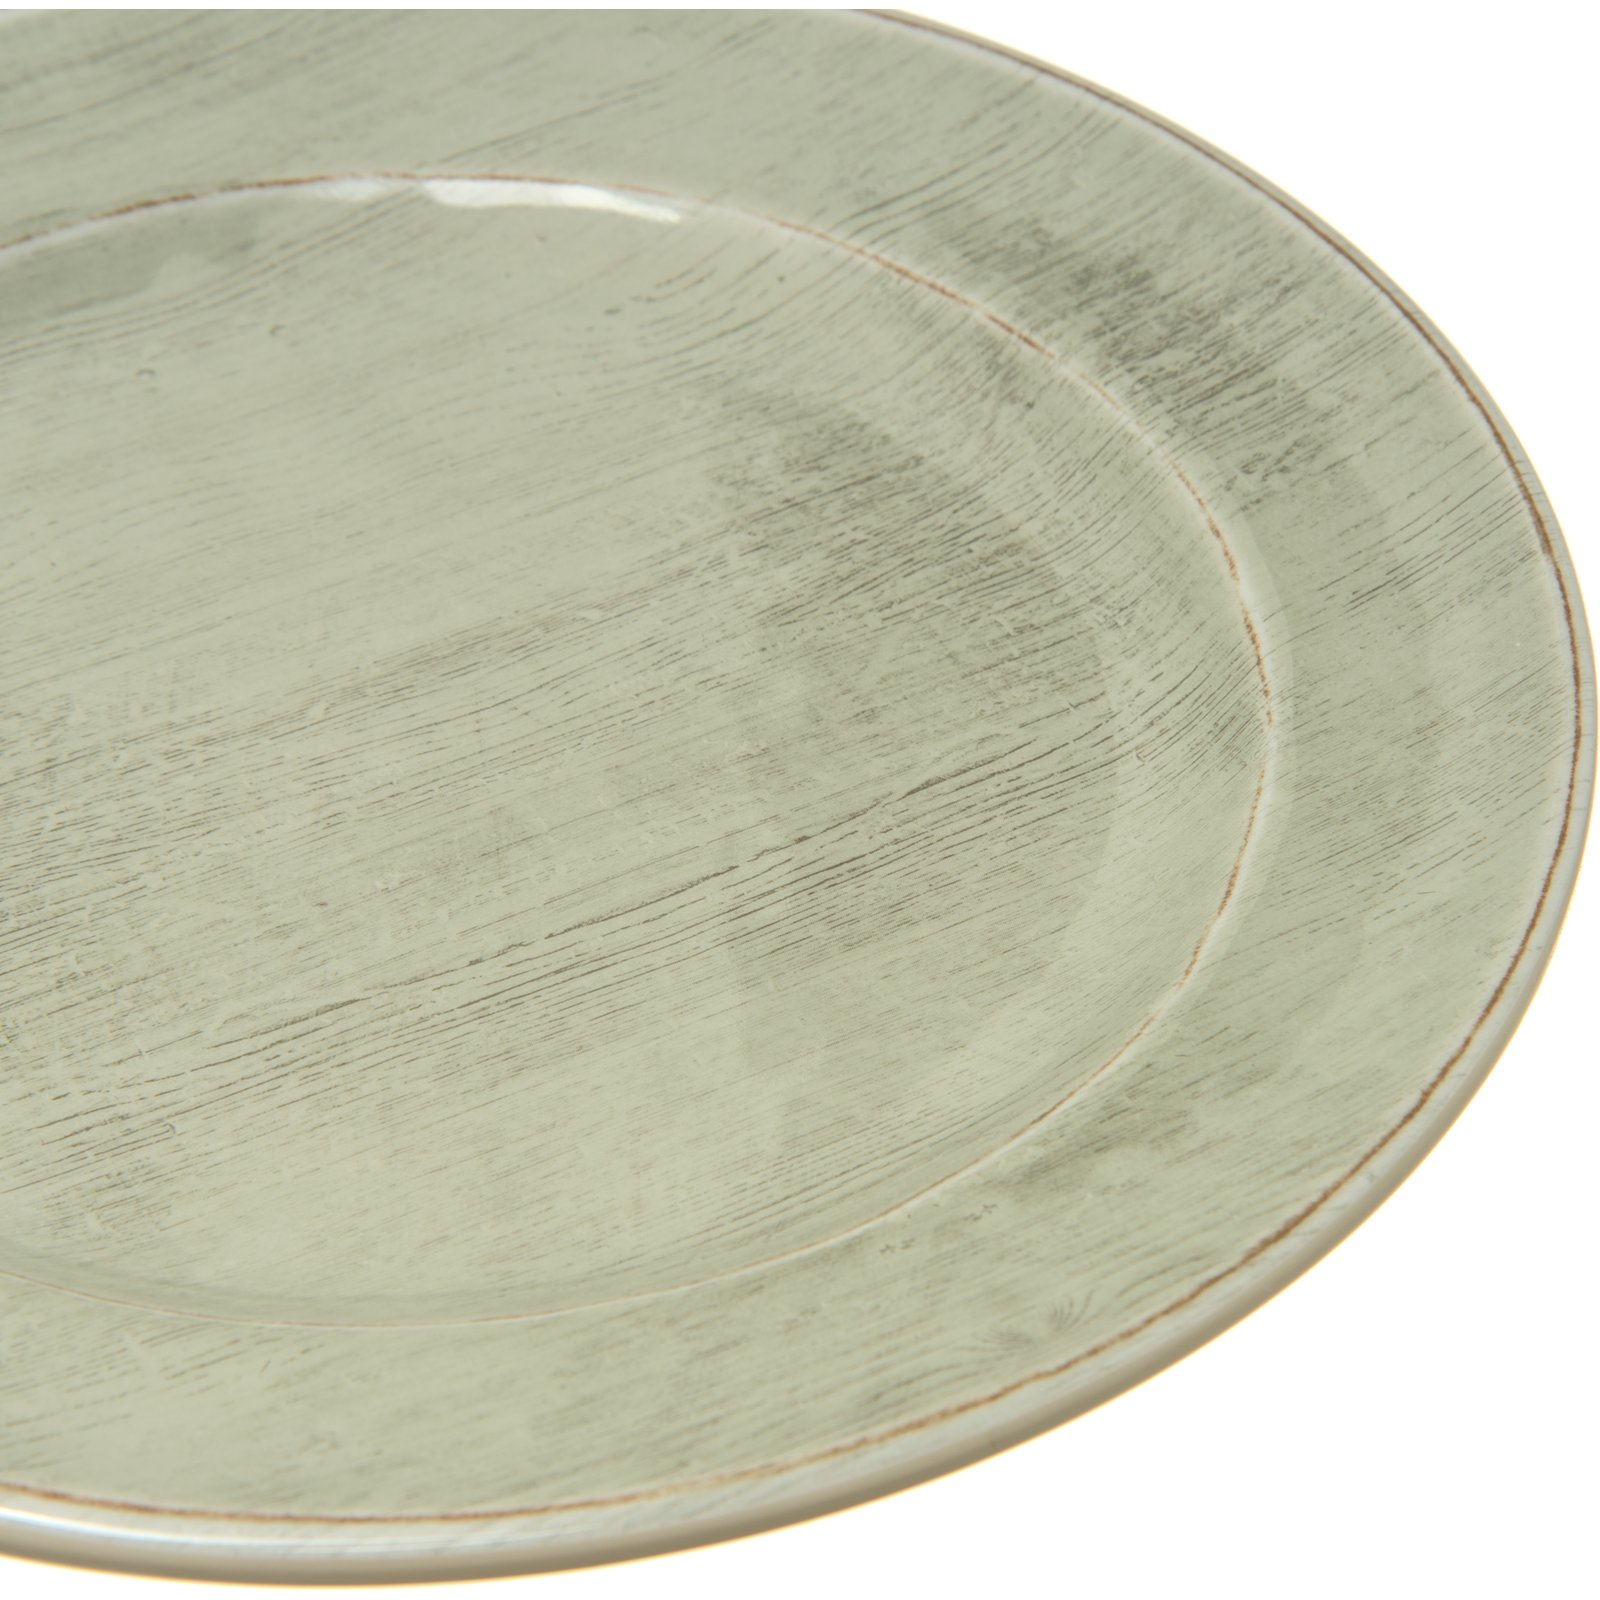 ... 6400746 - Grove Melamine Bread And Butter Plate 7\  - Jade  sc 1 st  Carlisle FoodService Products & 6400746 - Grove Melamine Bread And Butter Plate 7\